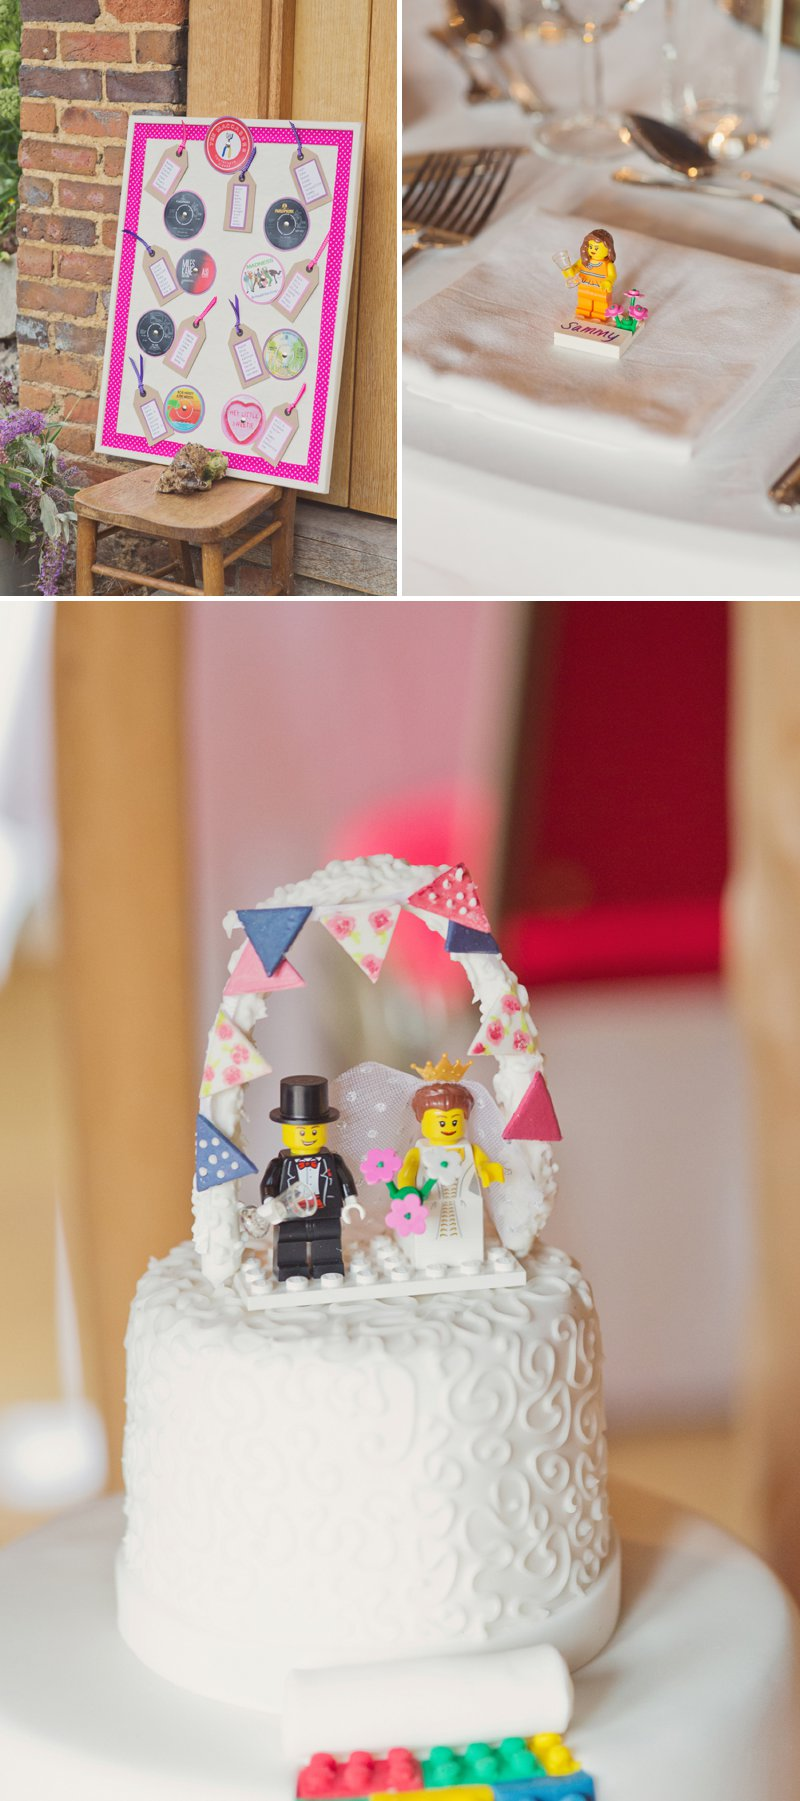 A Rustic Wedding At The Crown Inn Pishill With Bride In Bespoke Lace Gown And Groom In Tweed Suit From Clements And Church With Bunting And An Vintage VW Campervan Images From Cotton Candy Wedding Photography 8